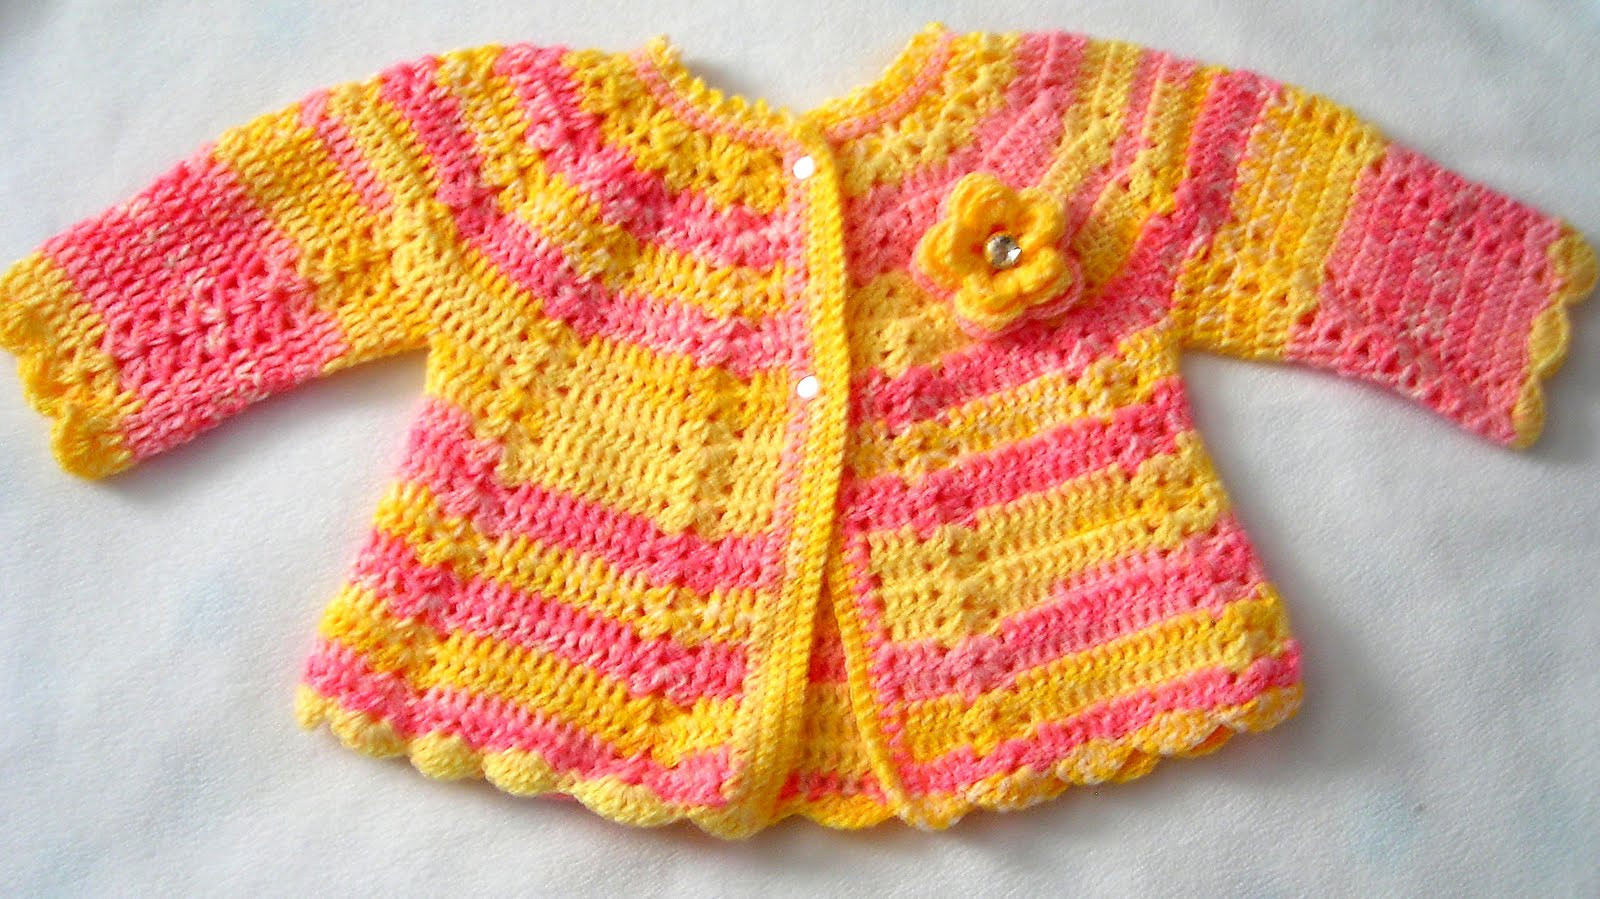 Crochet toddler Sweater Beautiful Crafts and Crocheting Crocheted Baby Sweaters Of Lovely 50 Photos Crochet toddler Sweater